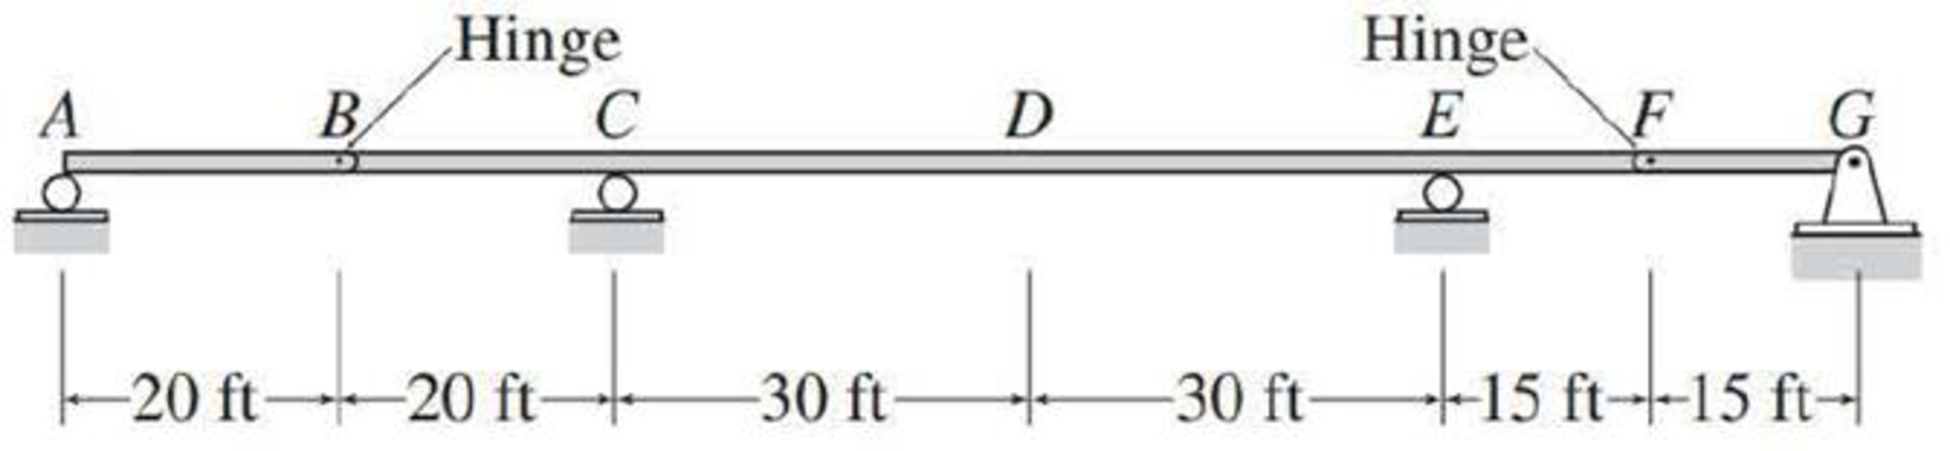 Chapter 8, Problem 23P, Draw the influence lines for the vertical reactions at supports A, C, E, and G of the beams shown in